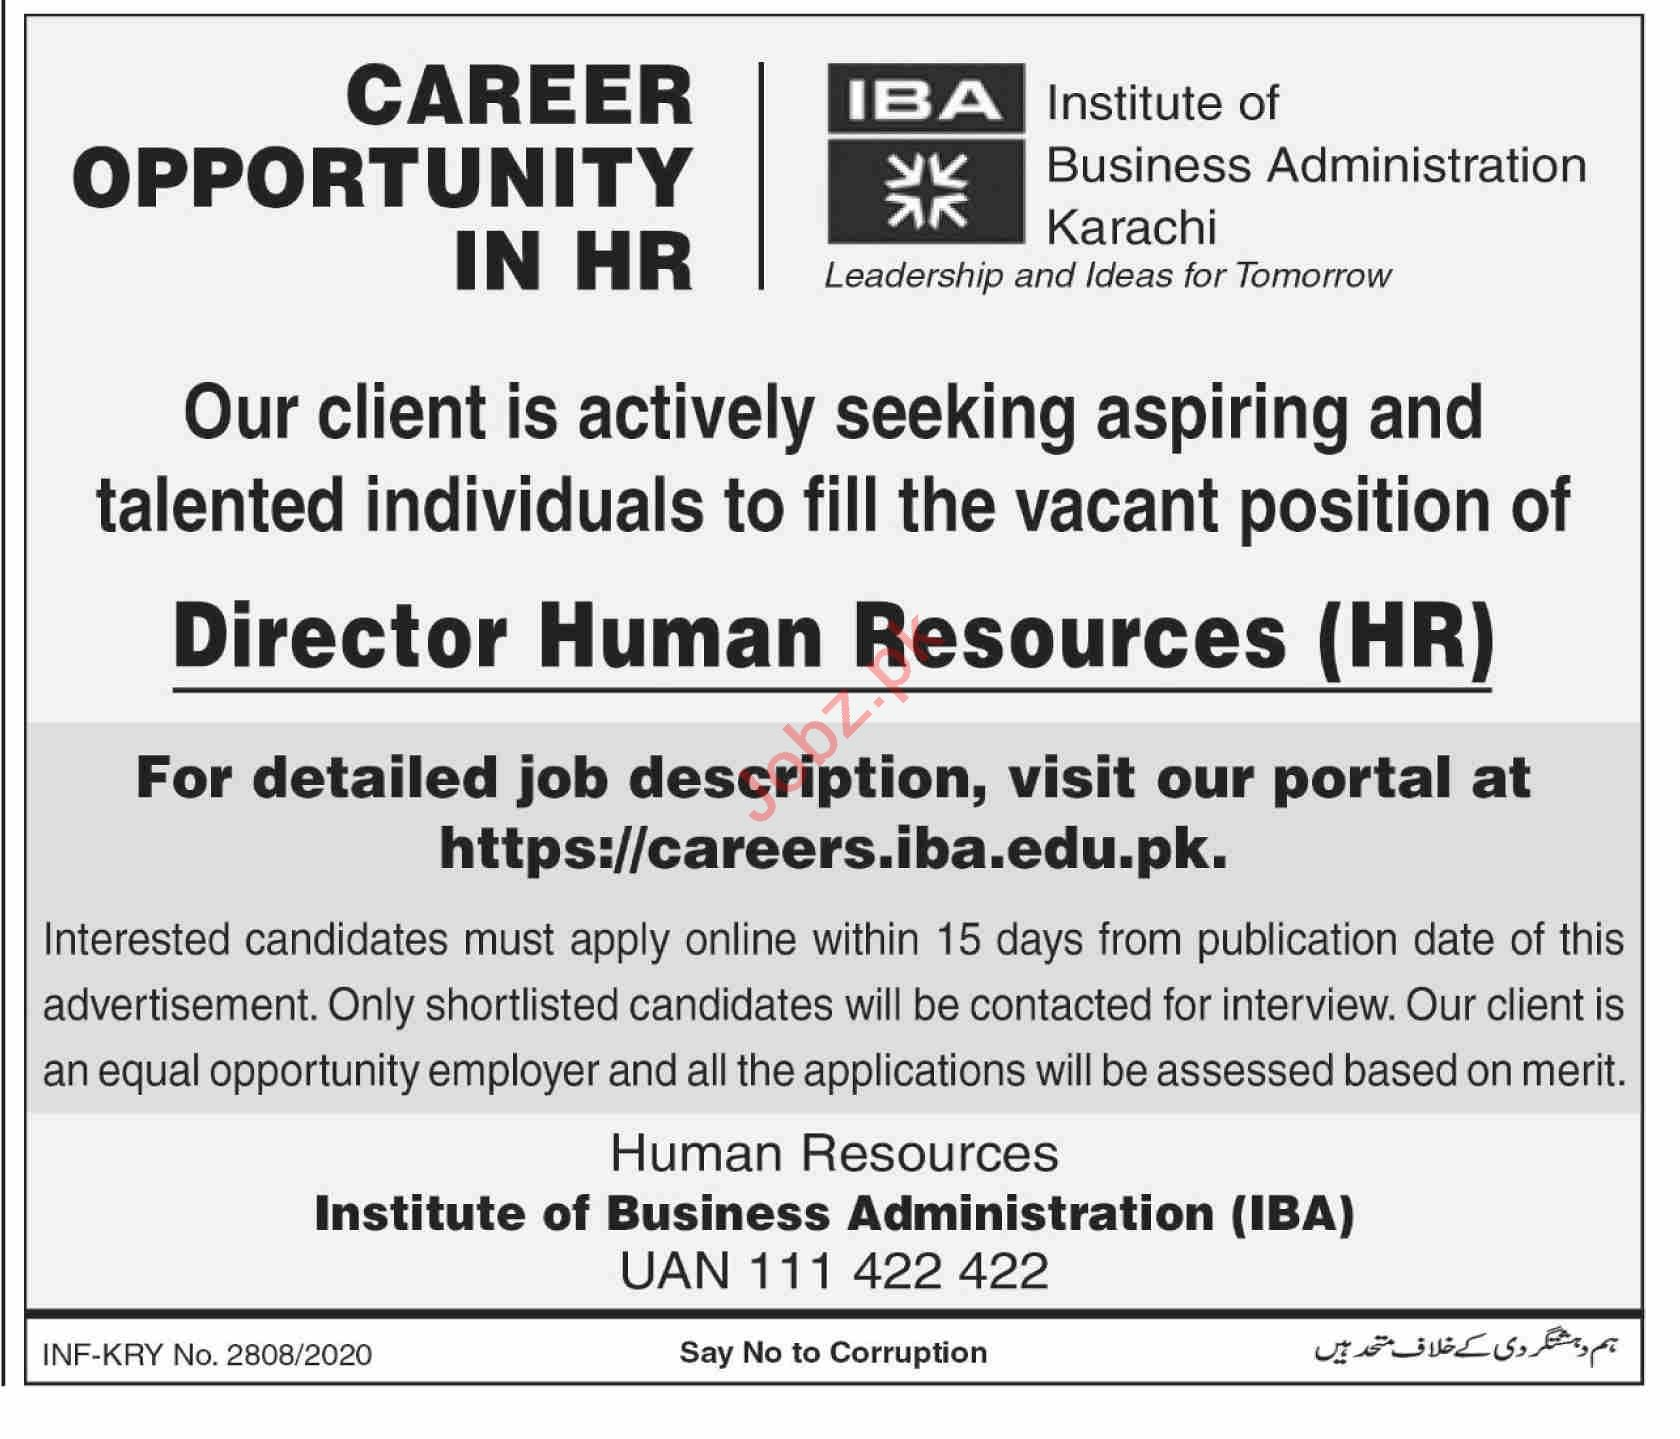 Institute of Business Administration IBA Jobs for Director